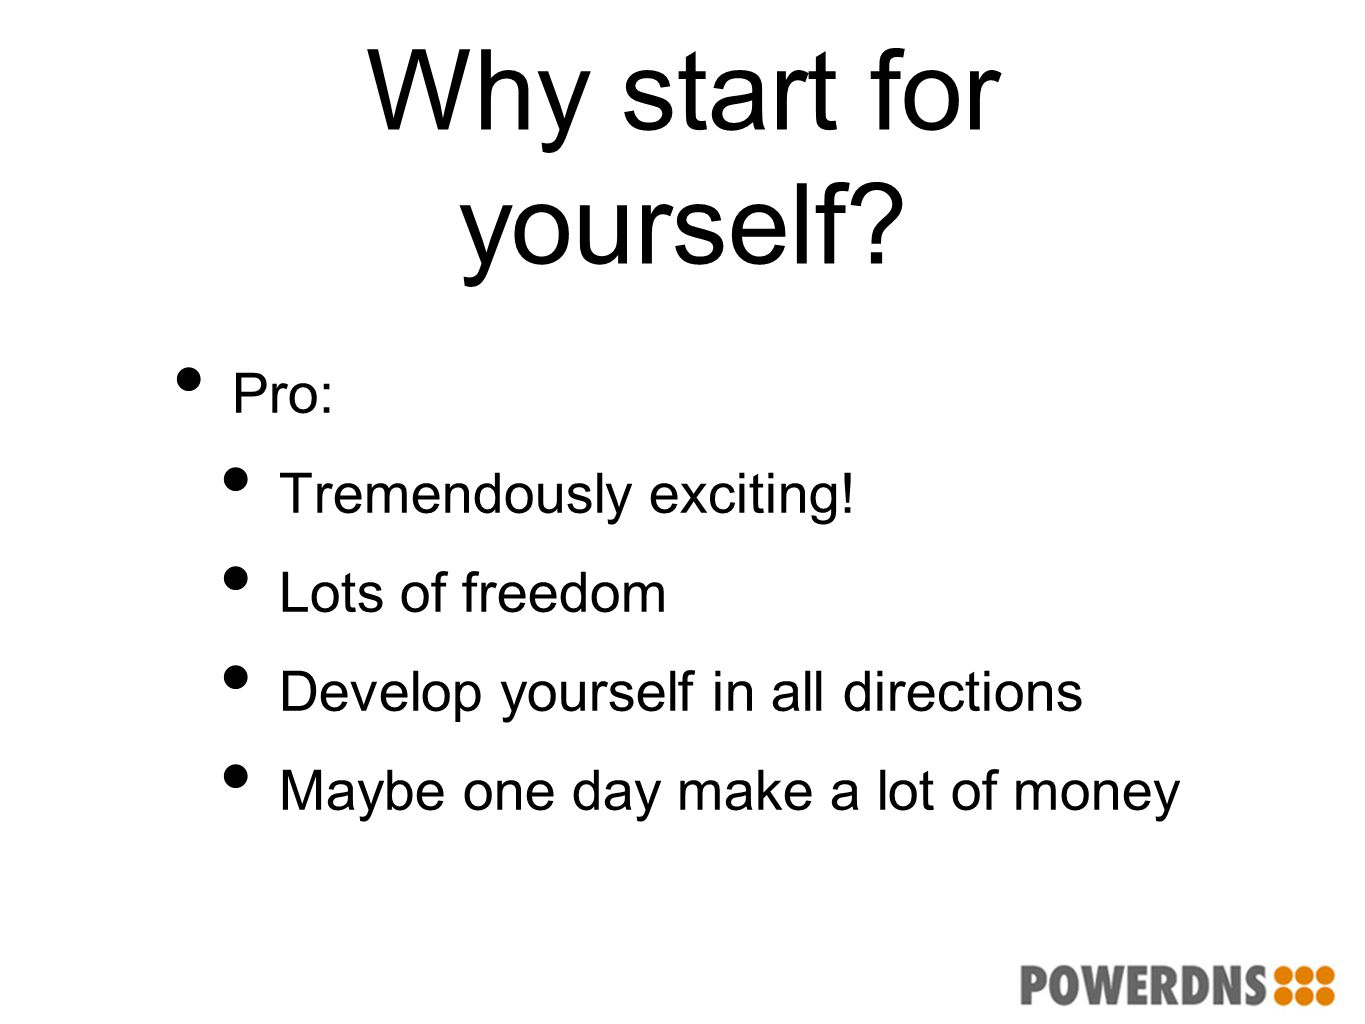 Why start for yourself.Cons: Tremendously exciting.